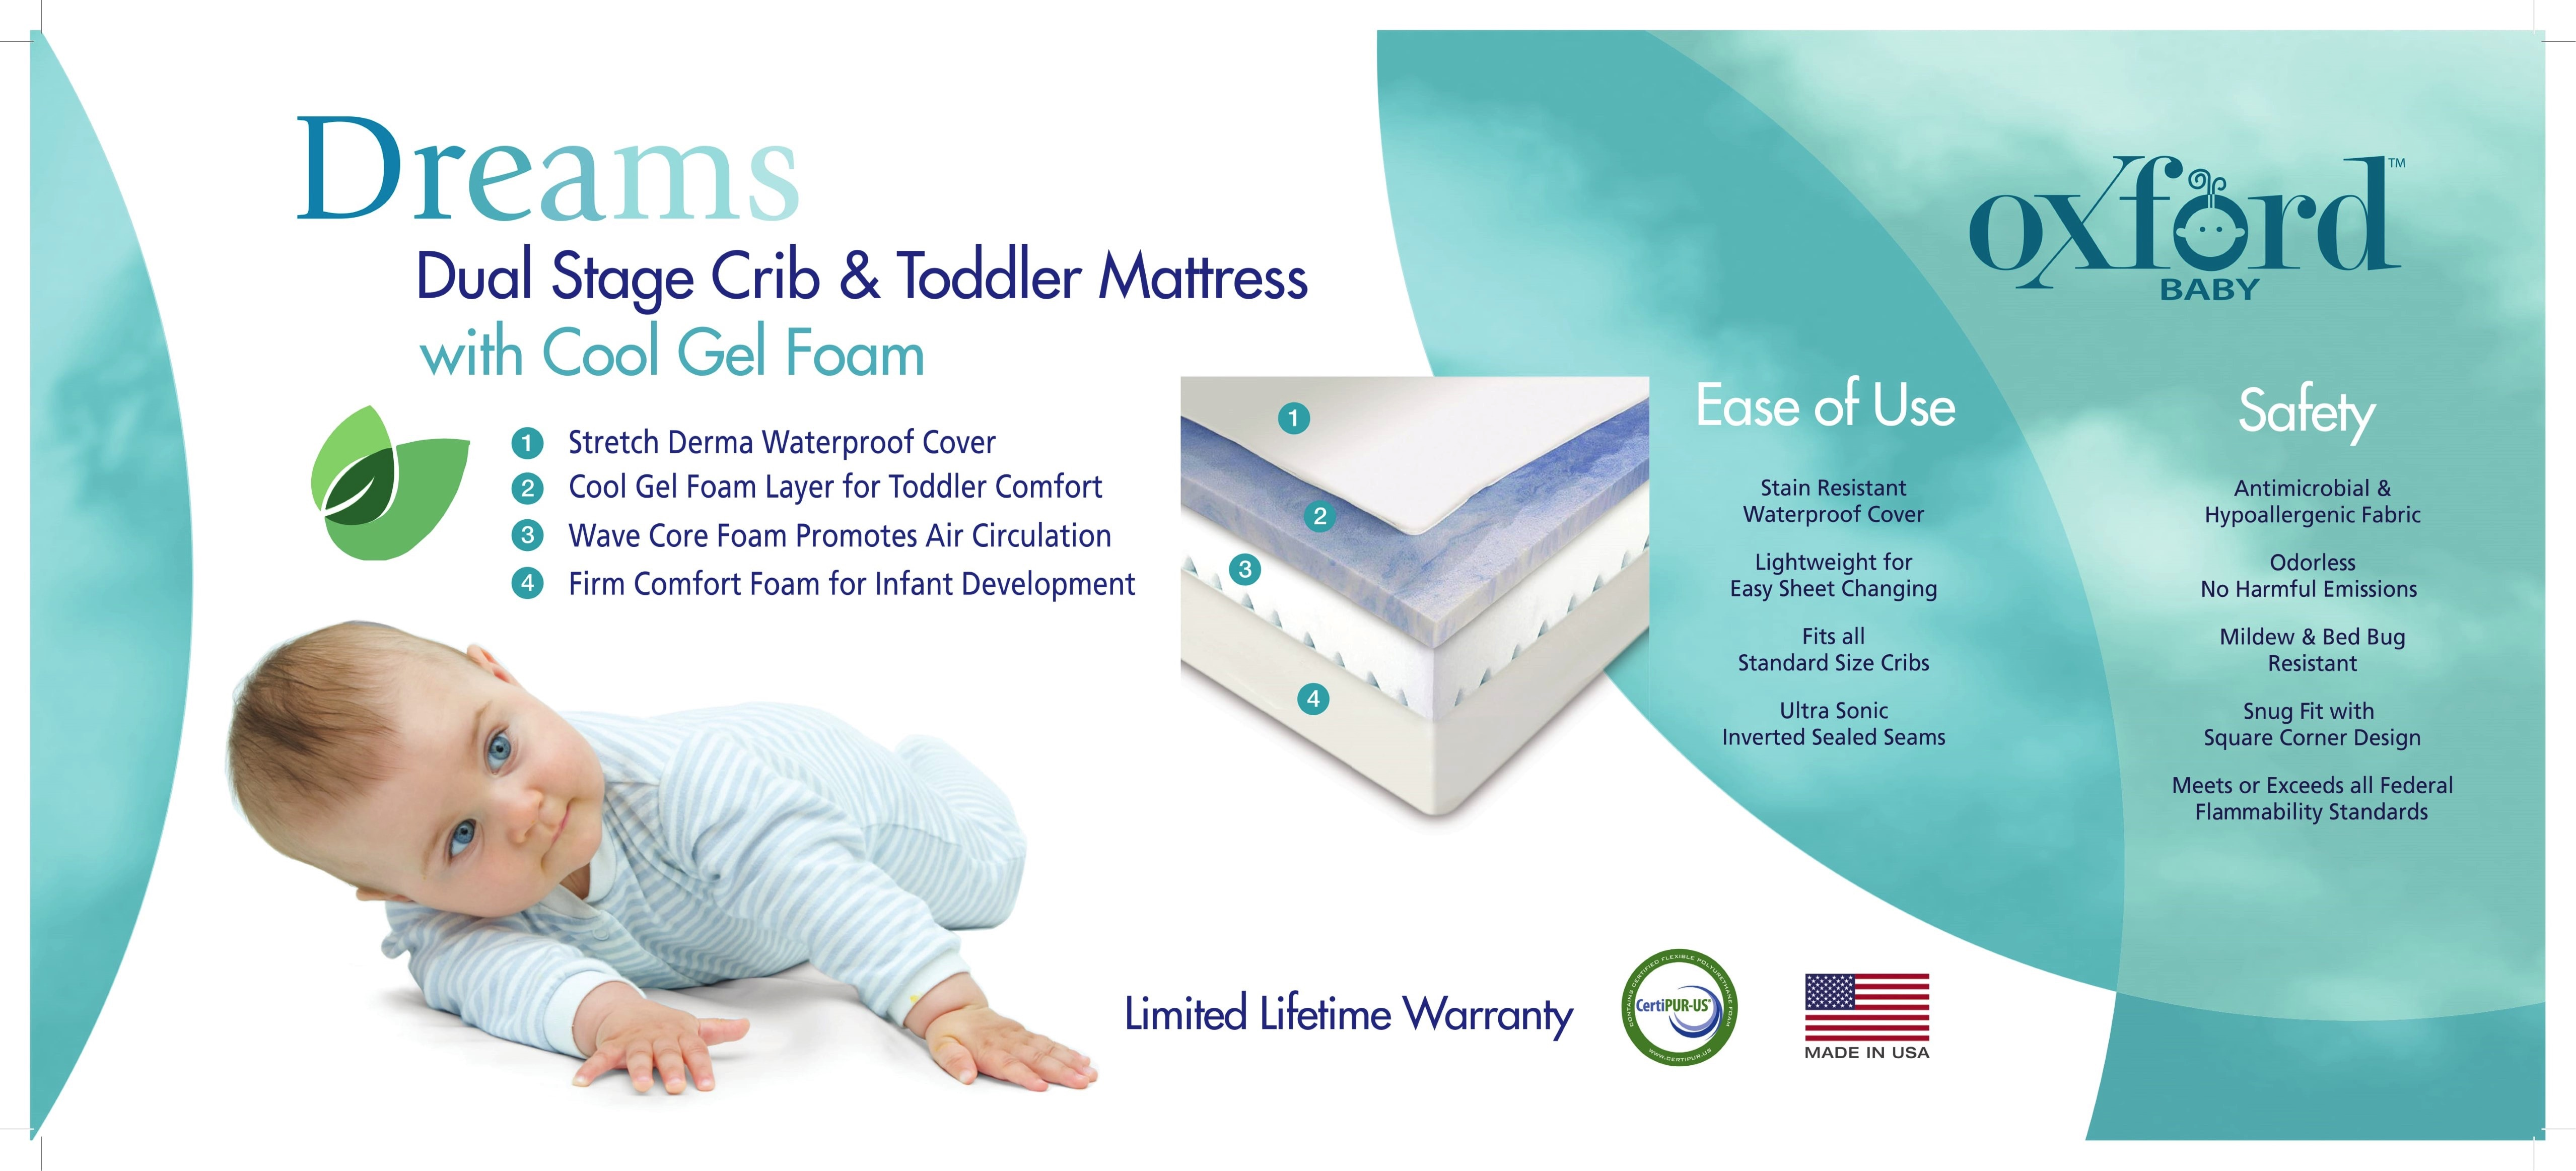 super popular 79650 783cb Dreams - Dual Stage Crib & Toddler Mattress